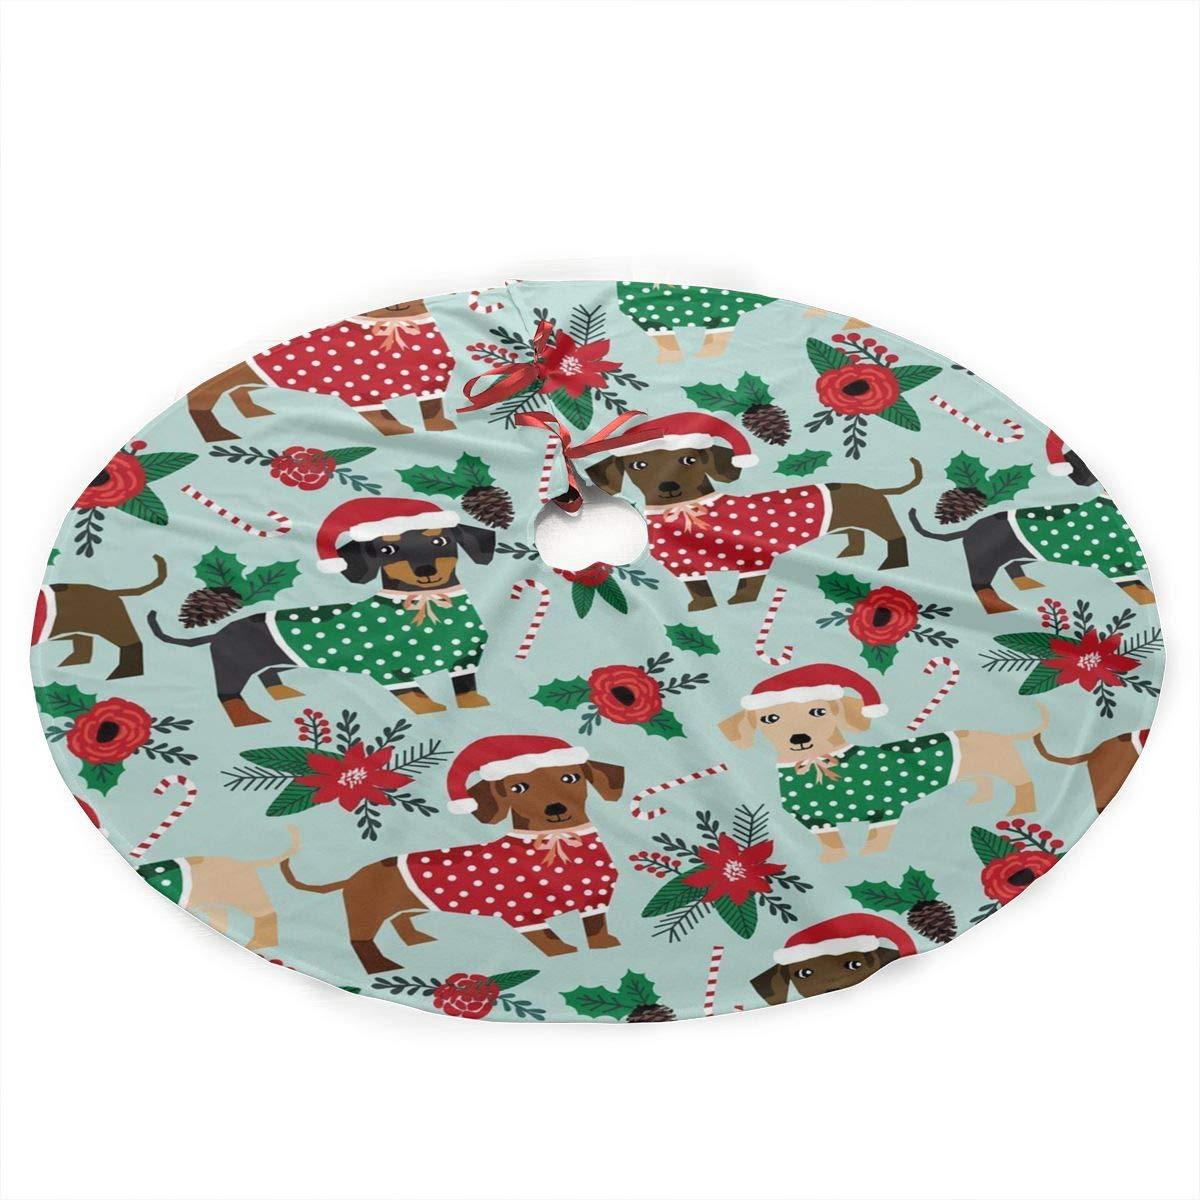 Christmas Sweaters Cute Dachshunds Christmas Tree Skirt with Santa, Xmas Tree Decorations Skirts Holiday Ornaments with Double Edges